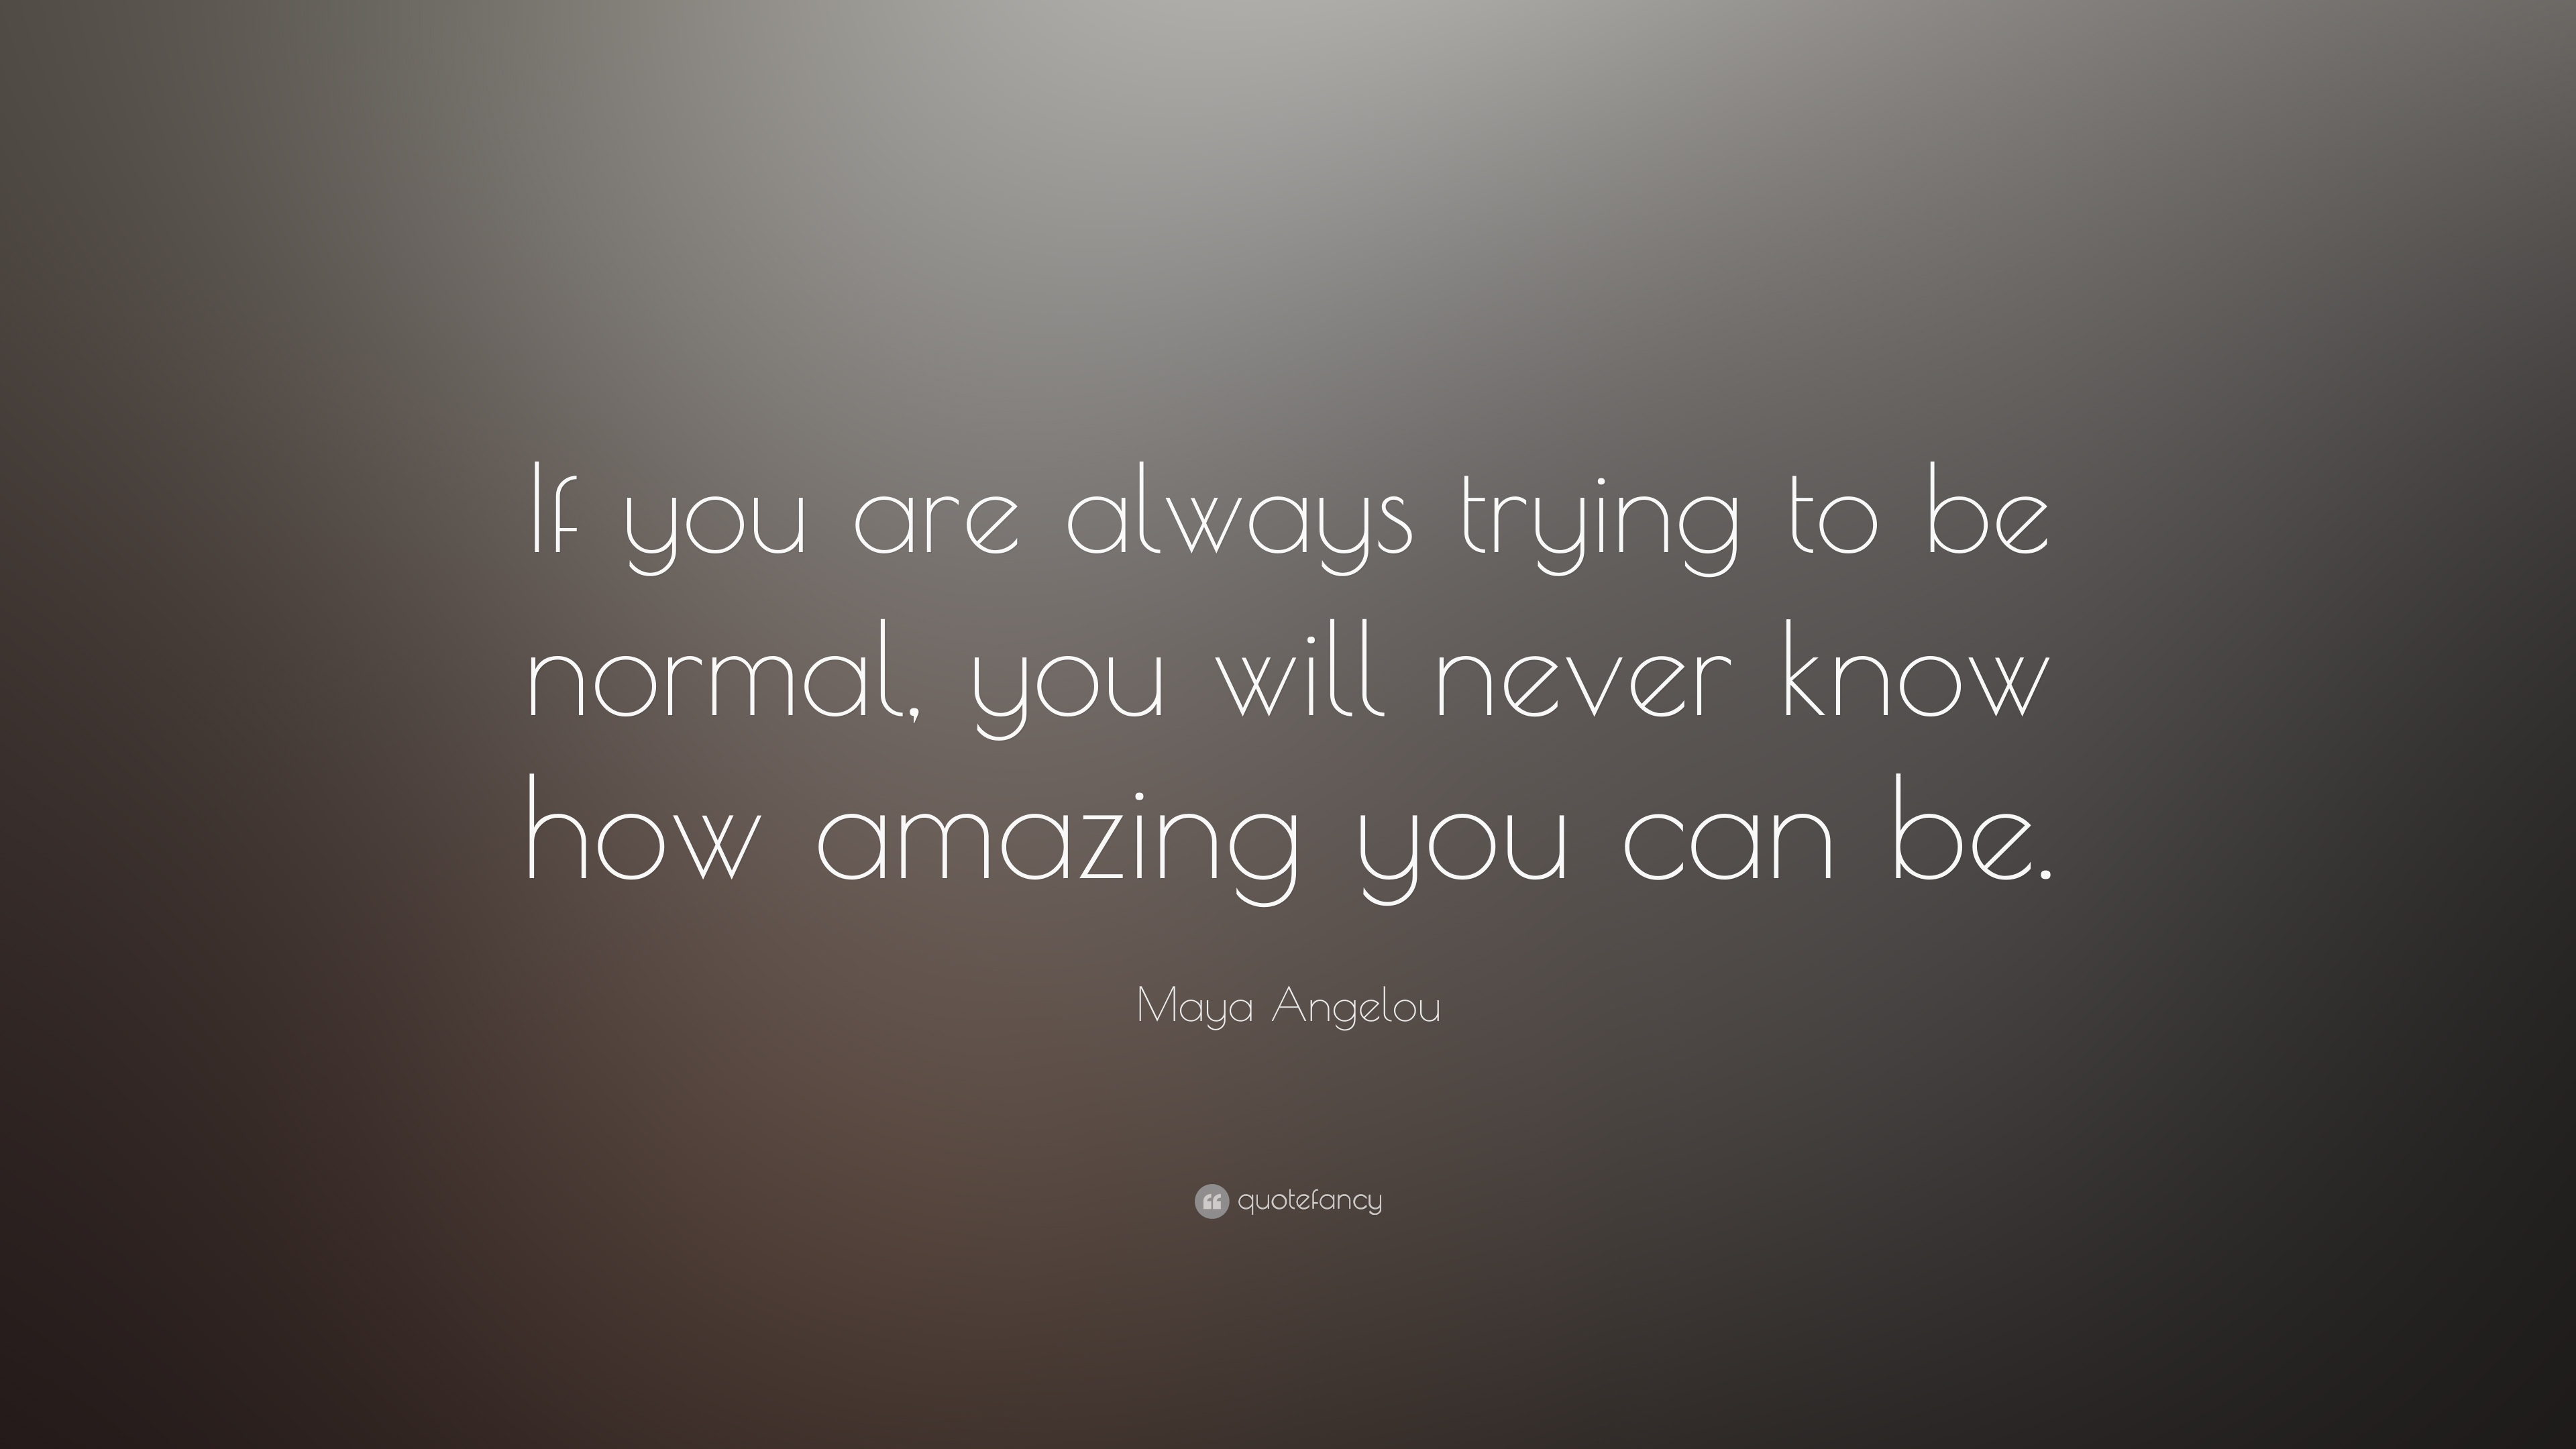 Relationship Quotes Wallpapers Maya Angelou Quote If You Are Always Trying To Be Normal